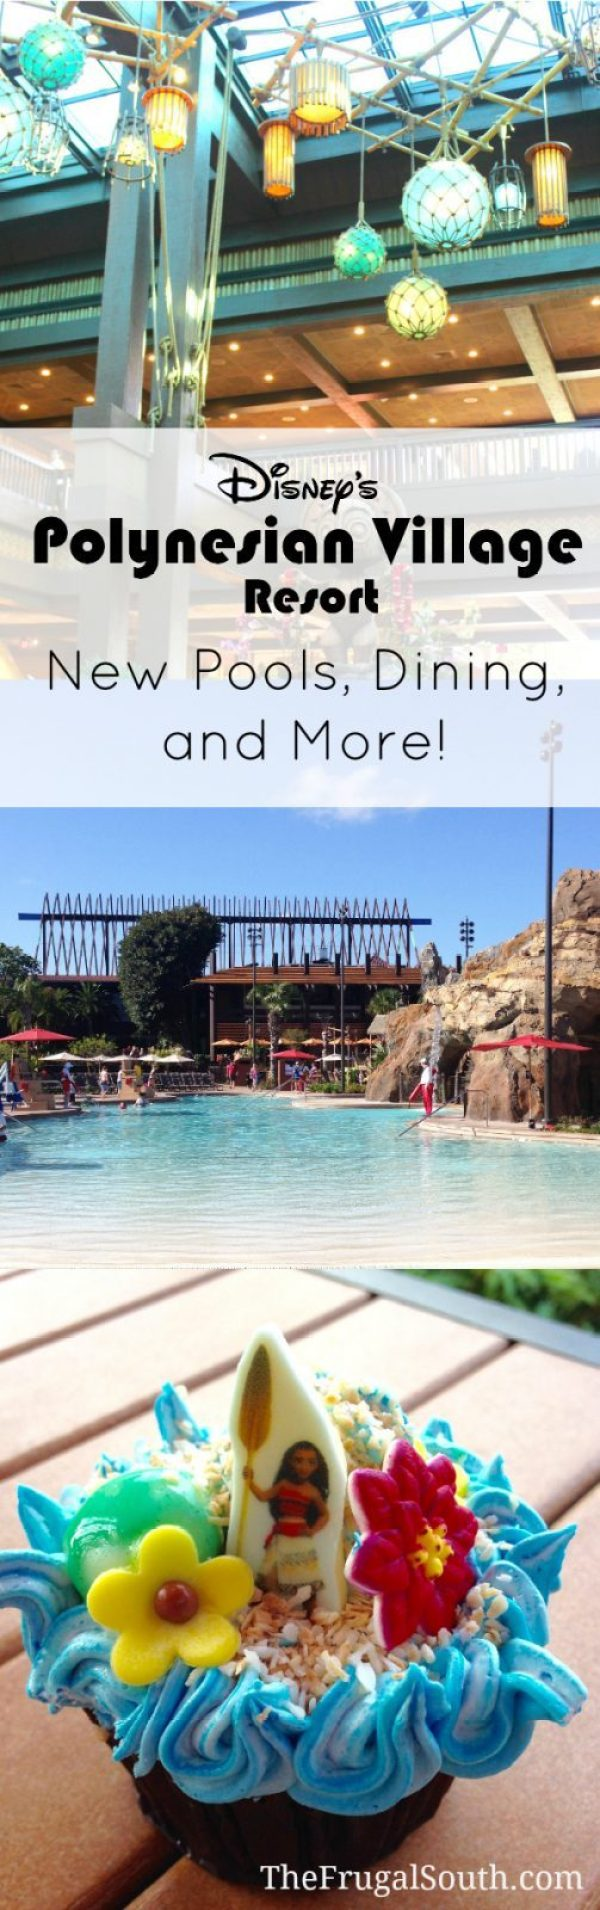 All the details on updates to the pools, dining, and lobby at Disney's Polynesian Village Resort. Tips to help you plan your stay at the Polynesian or just visit the resort. A Disney World Resort Review from The Frugal South.